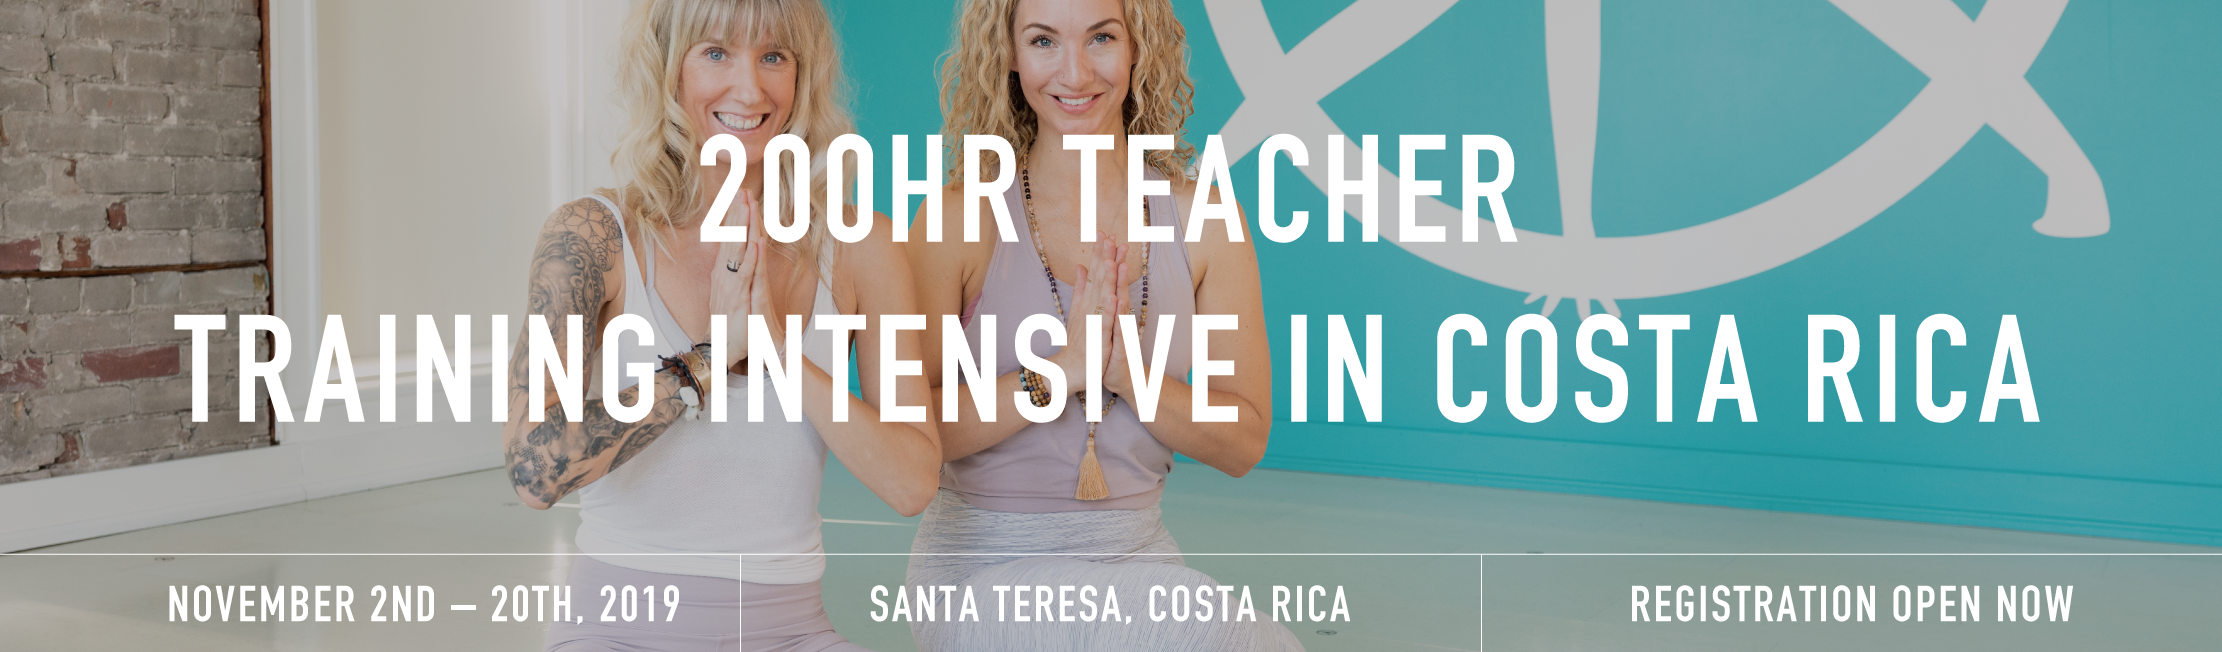 Costa rica teacher training banner7